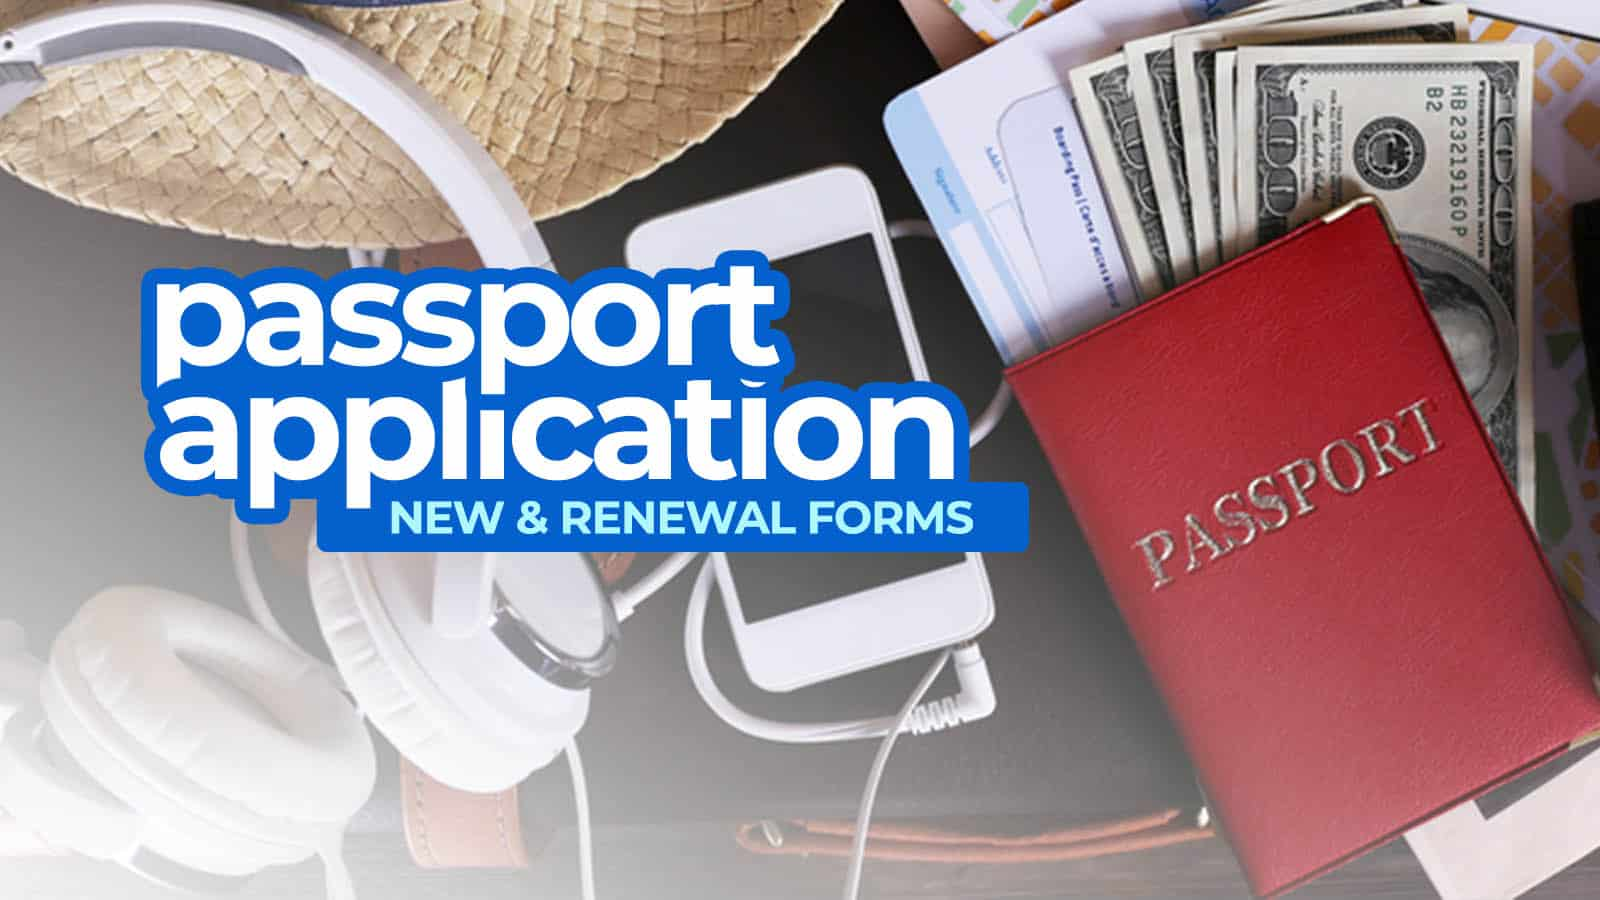 passport application renewal